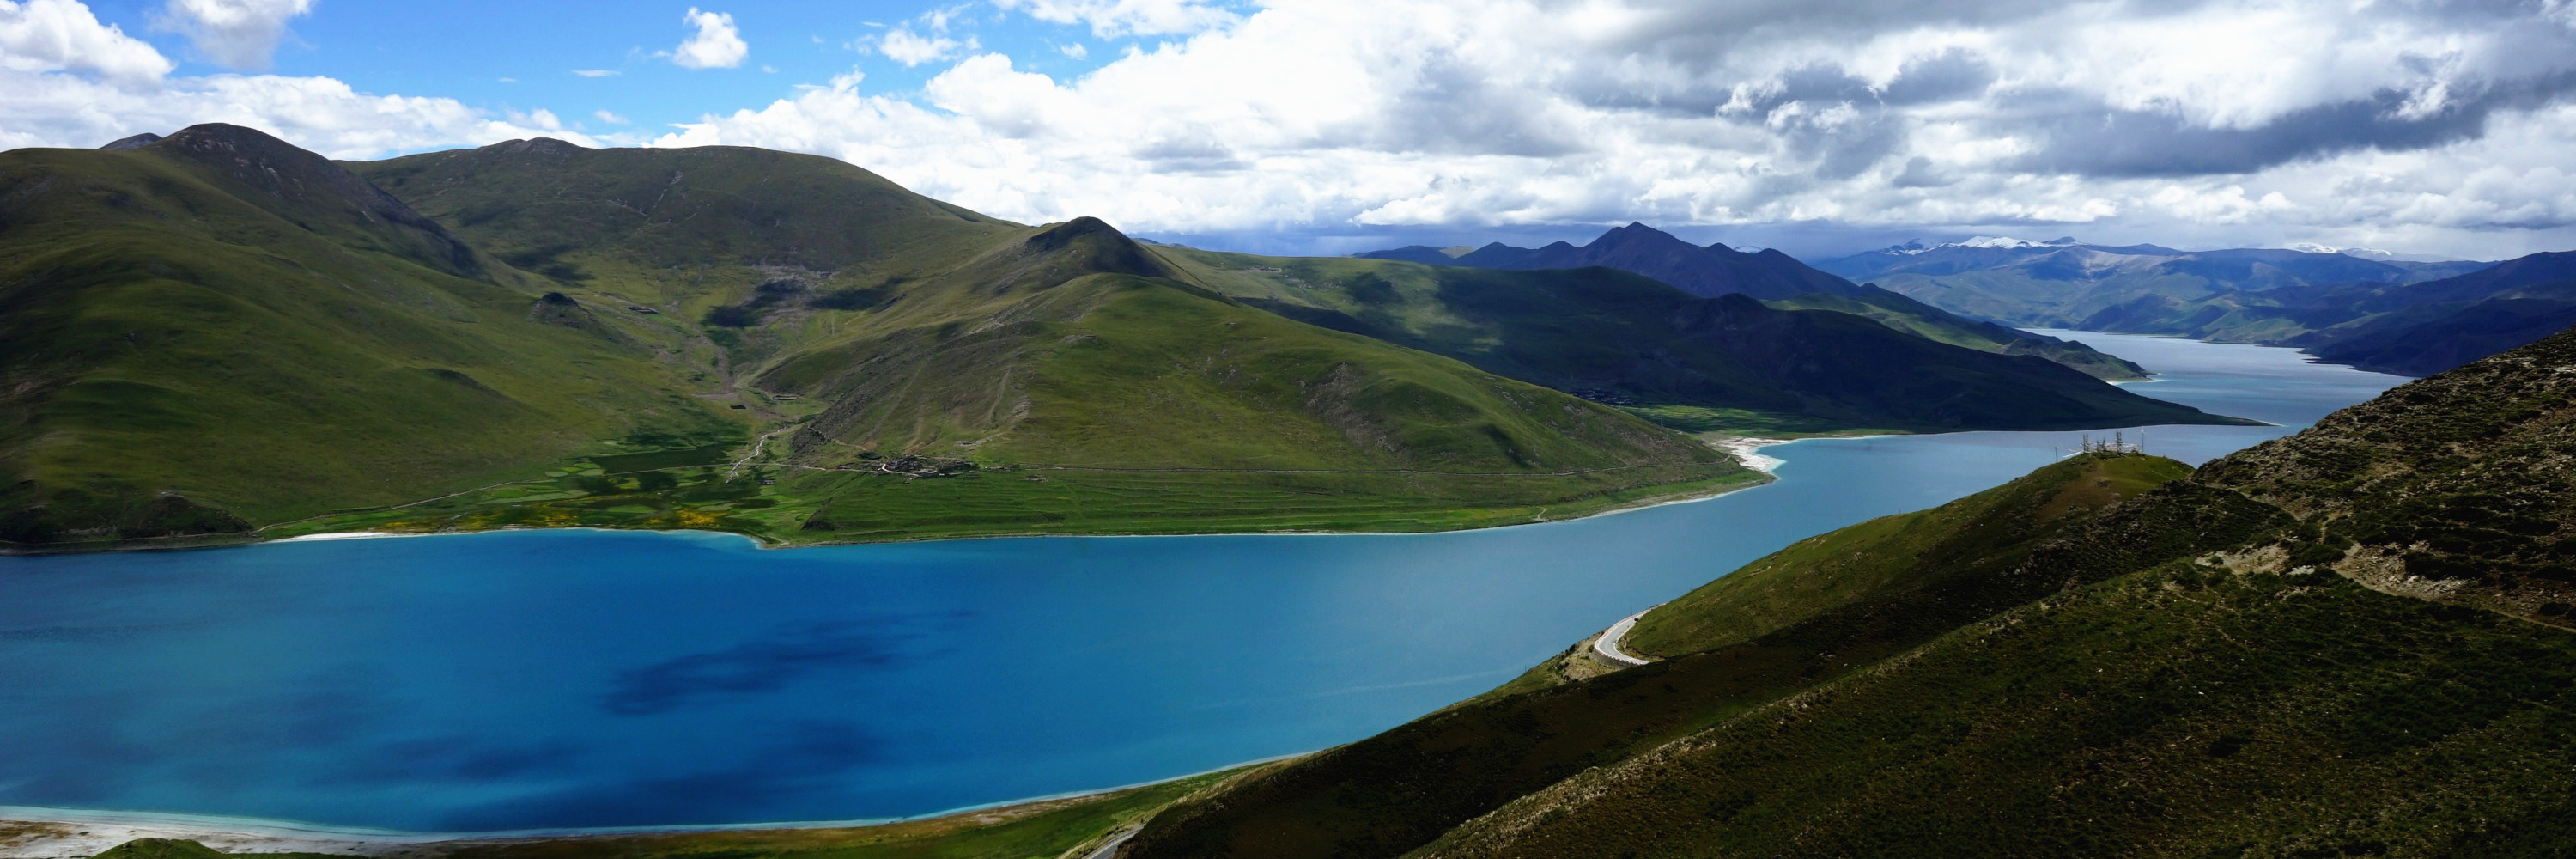 tibet yamdrok lake tour